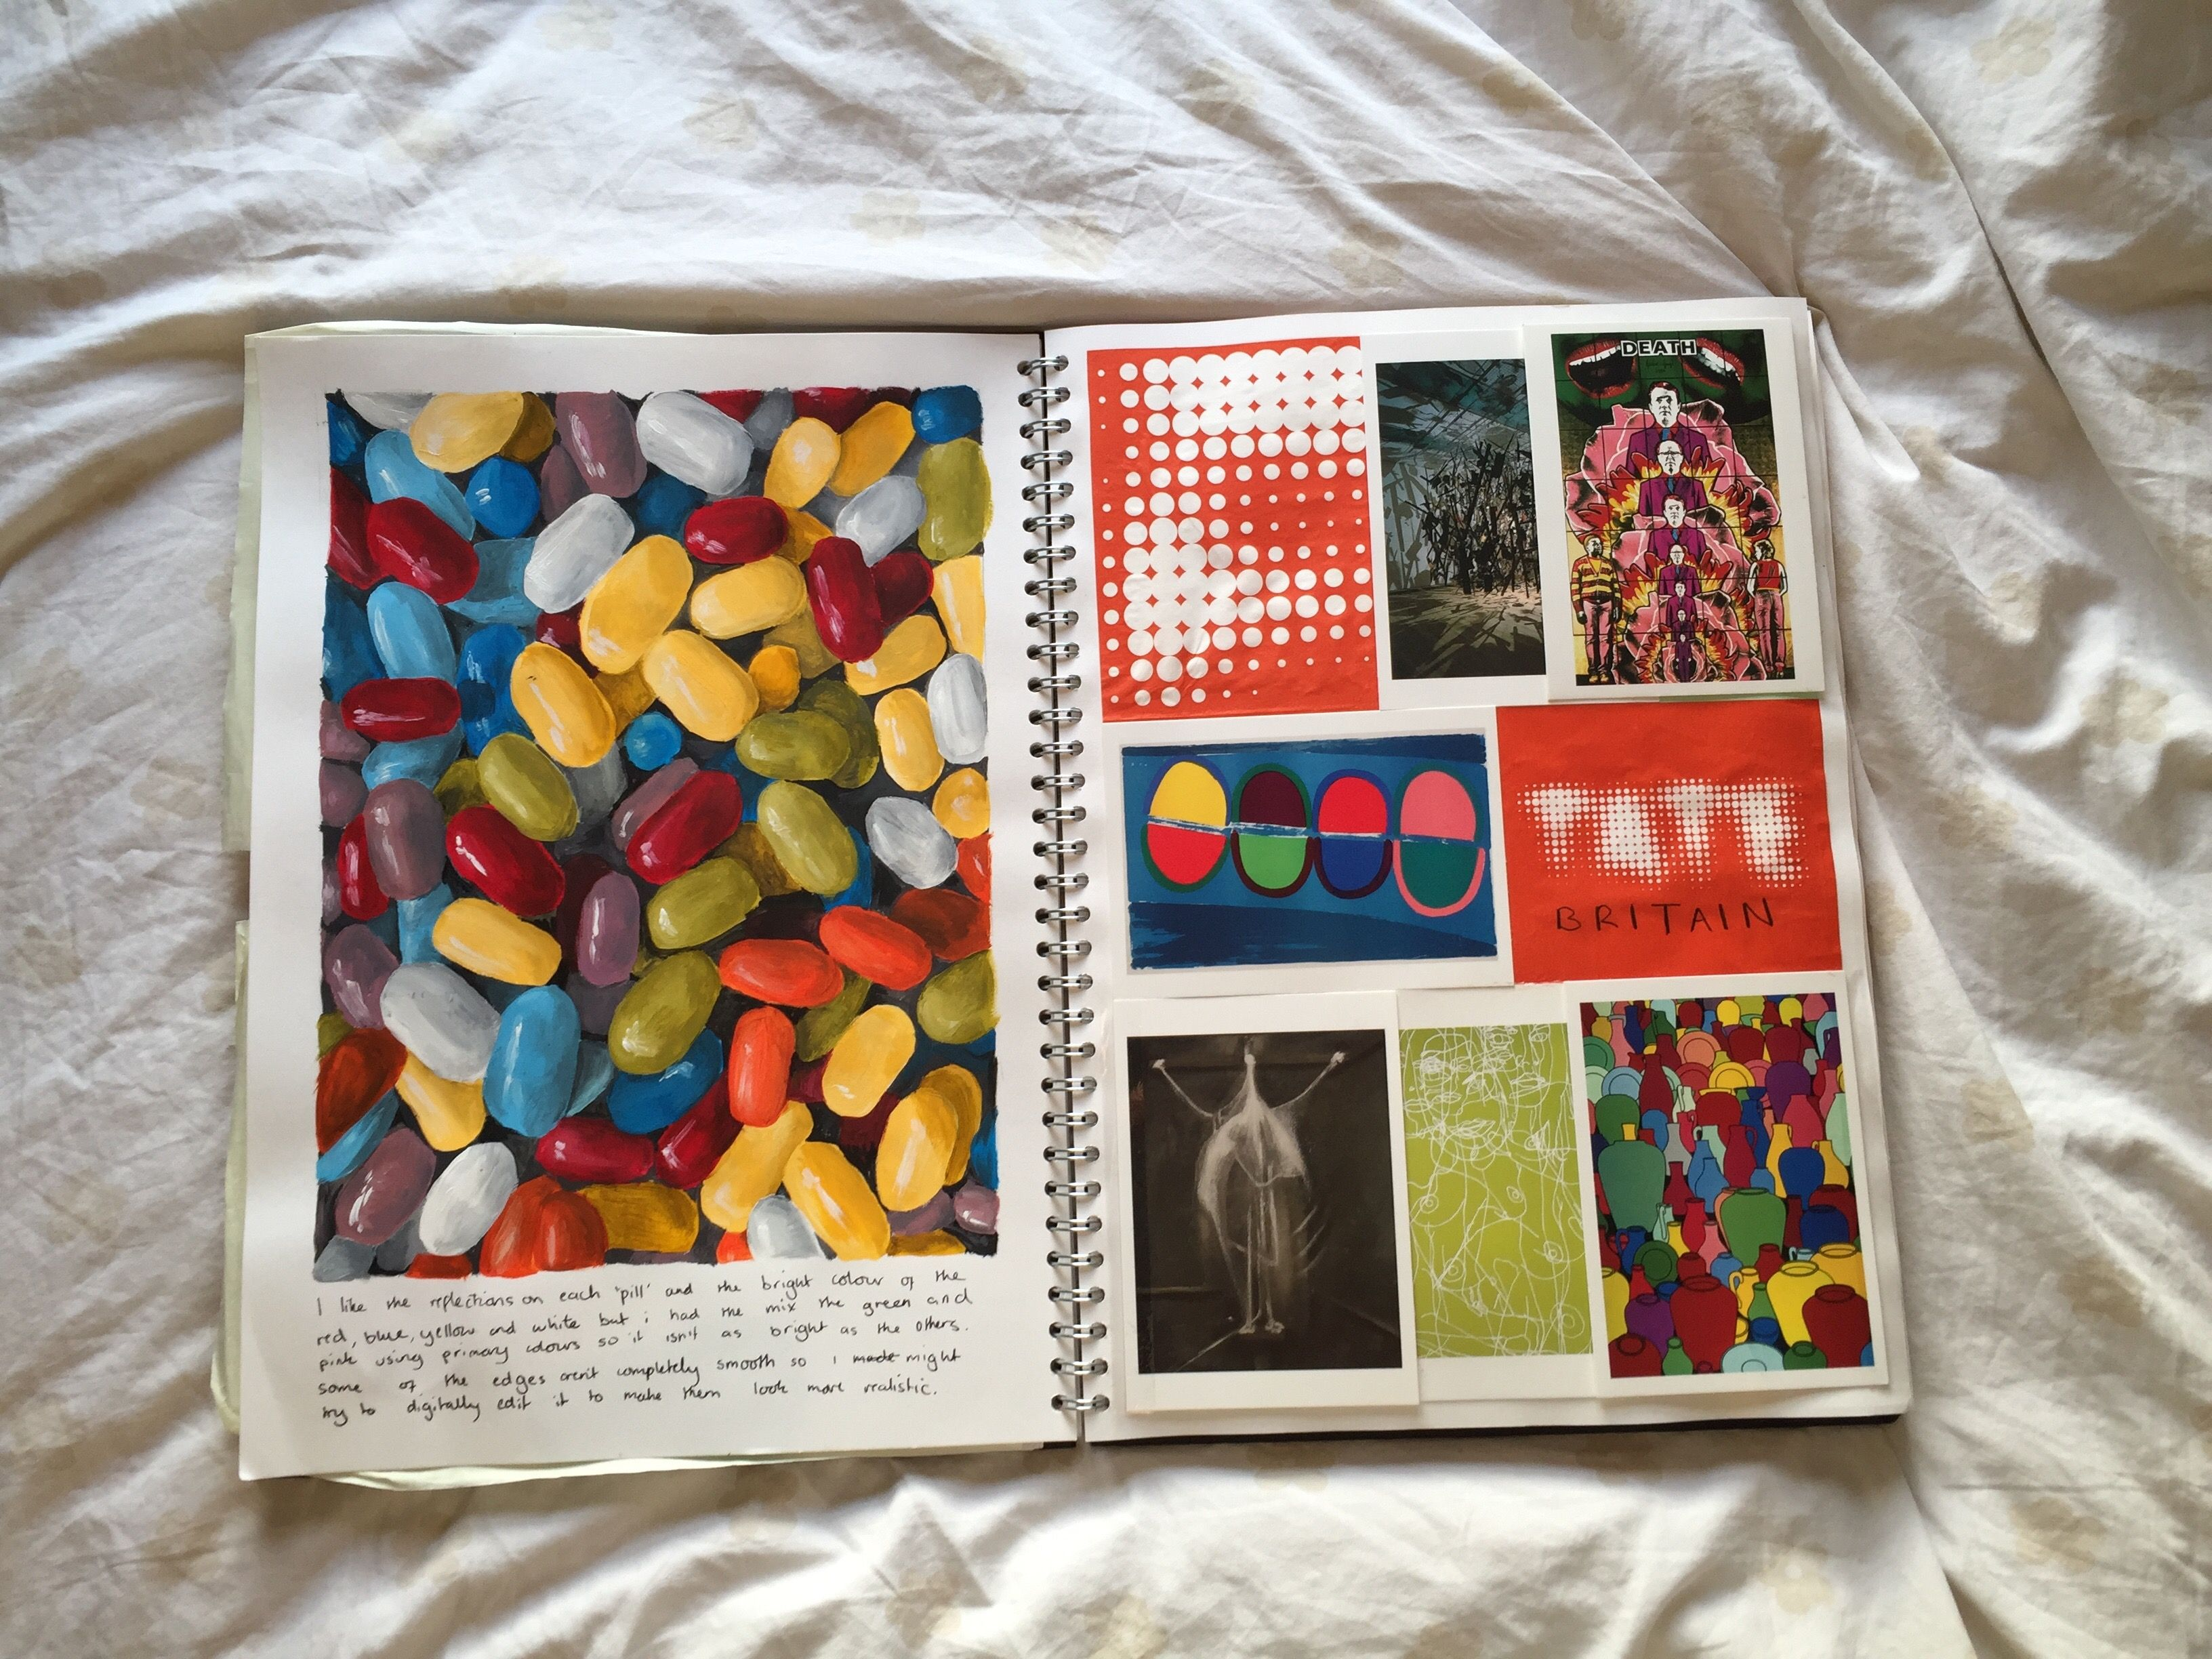 GCSE sketchbook - Painting of pills and write up of visit ...